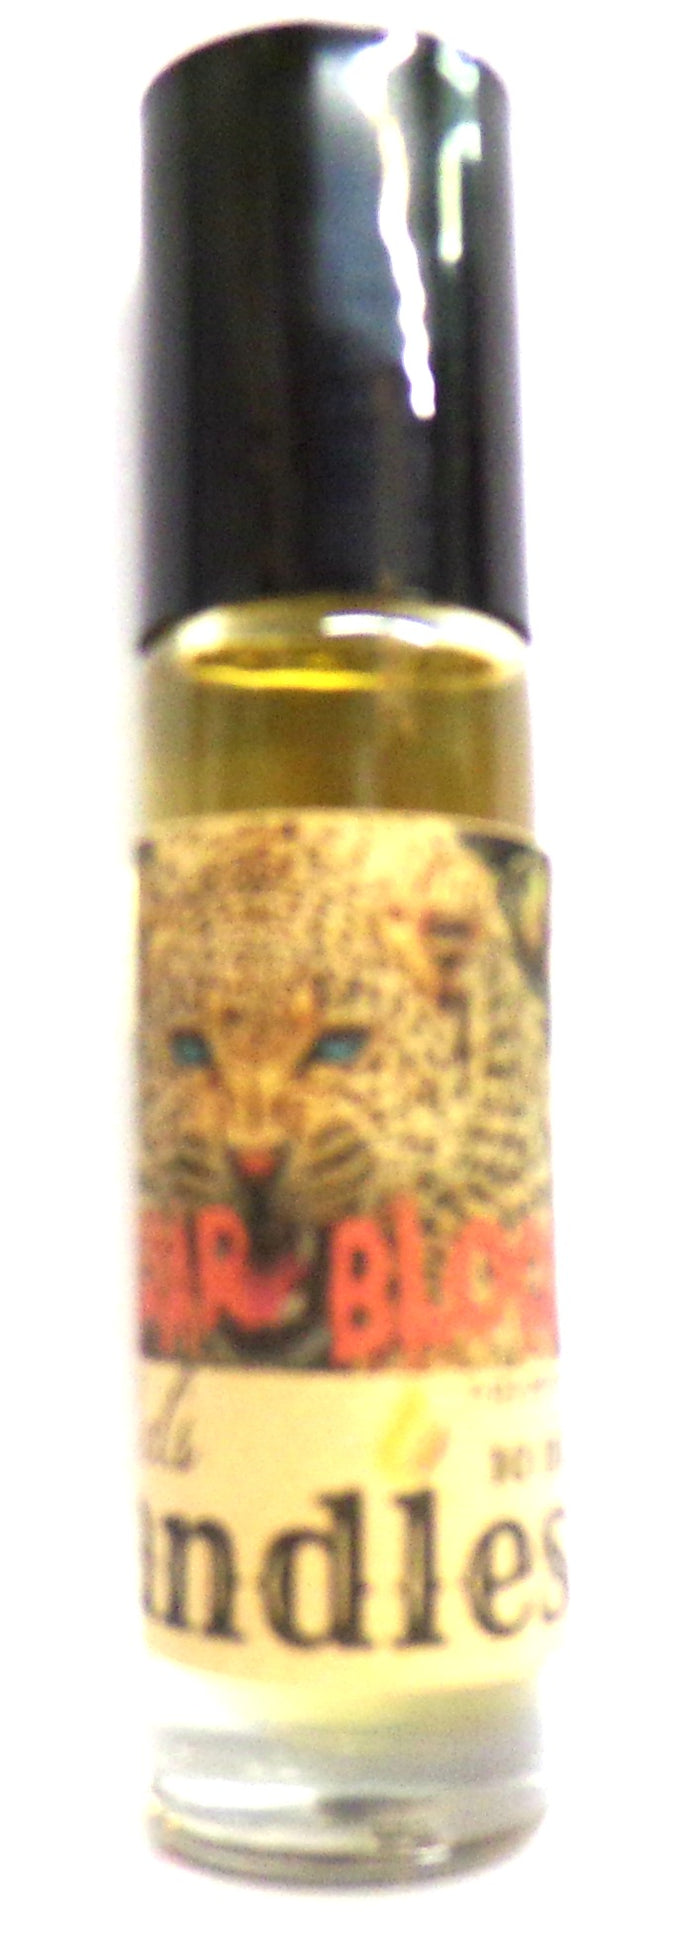 Jaguar Blood 10 ml Glass Roll on Bottle of Perfume Oil Not an AF Woods Product